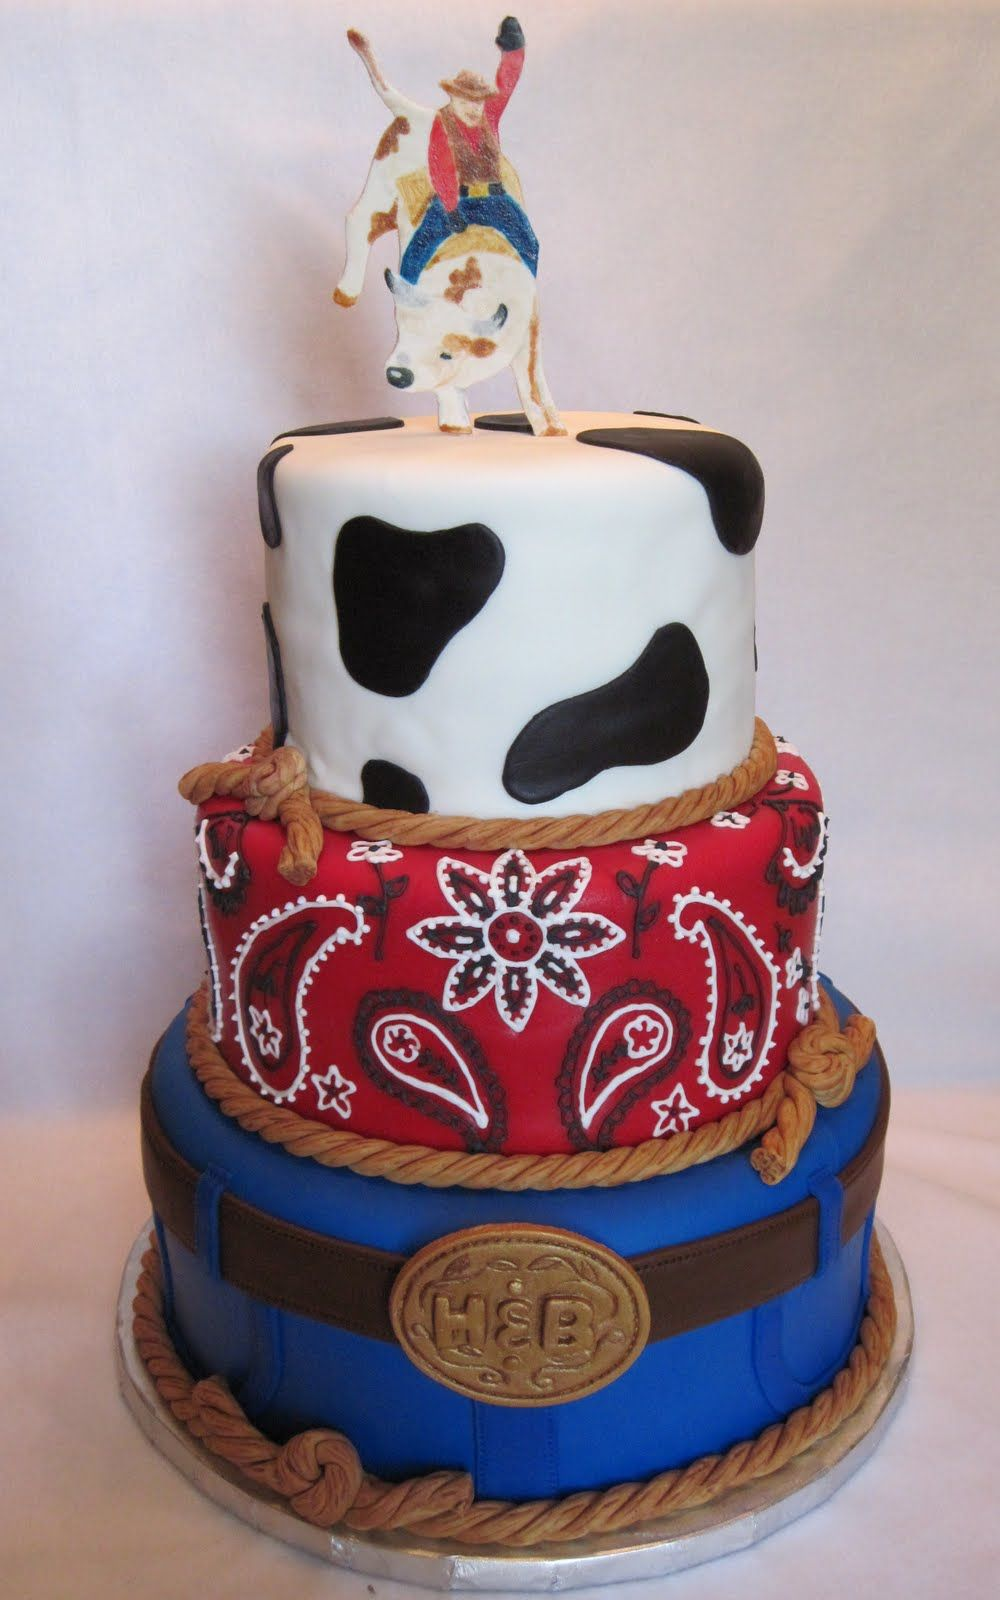 cowboyrodeo cake Google Search cakes Pinterest Rodeo